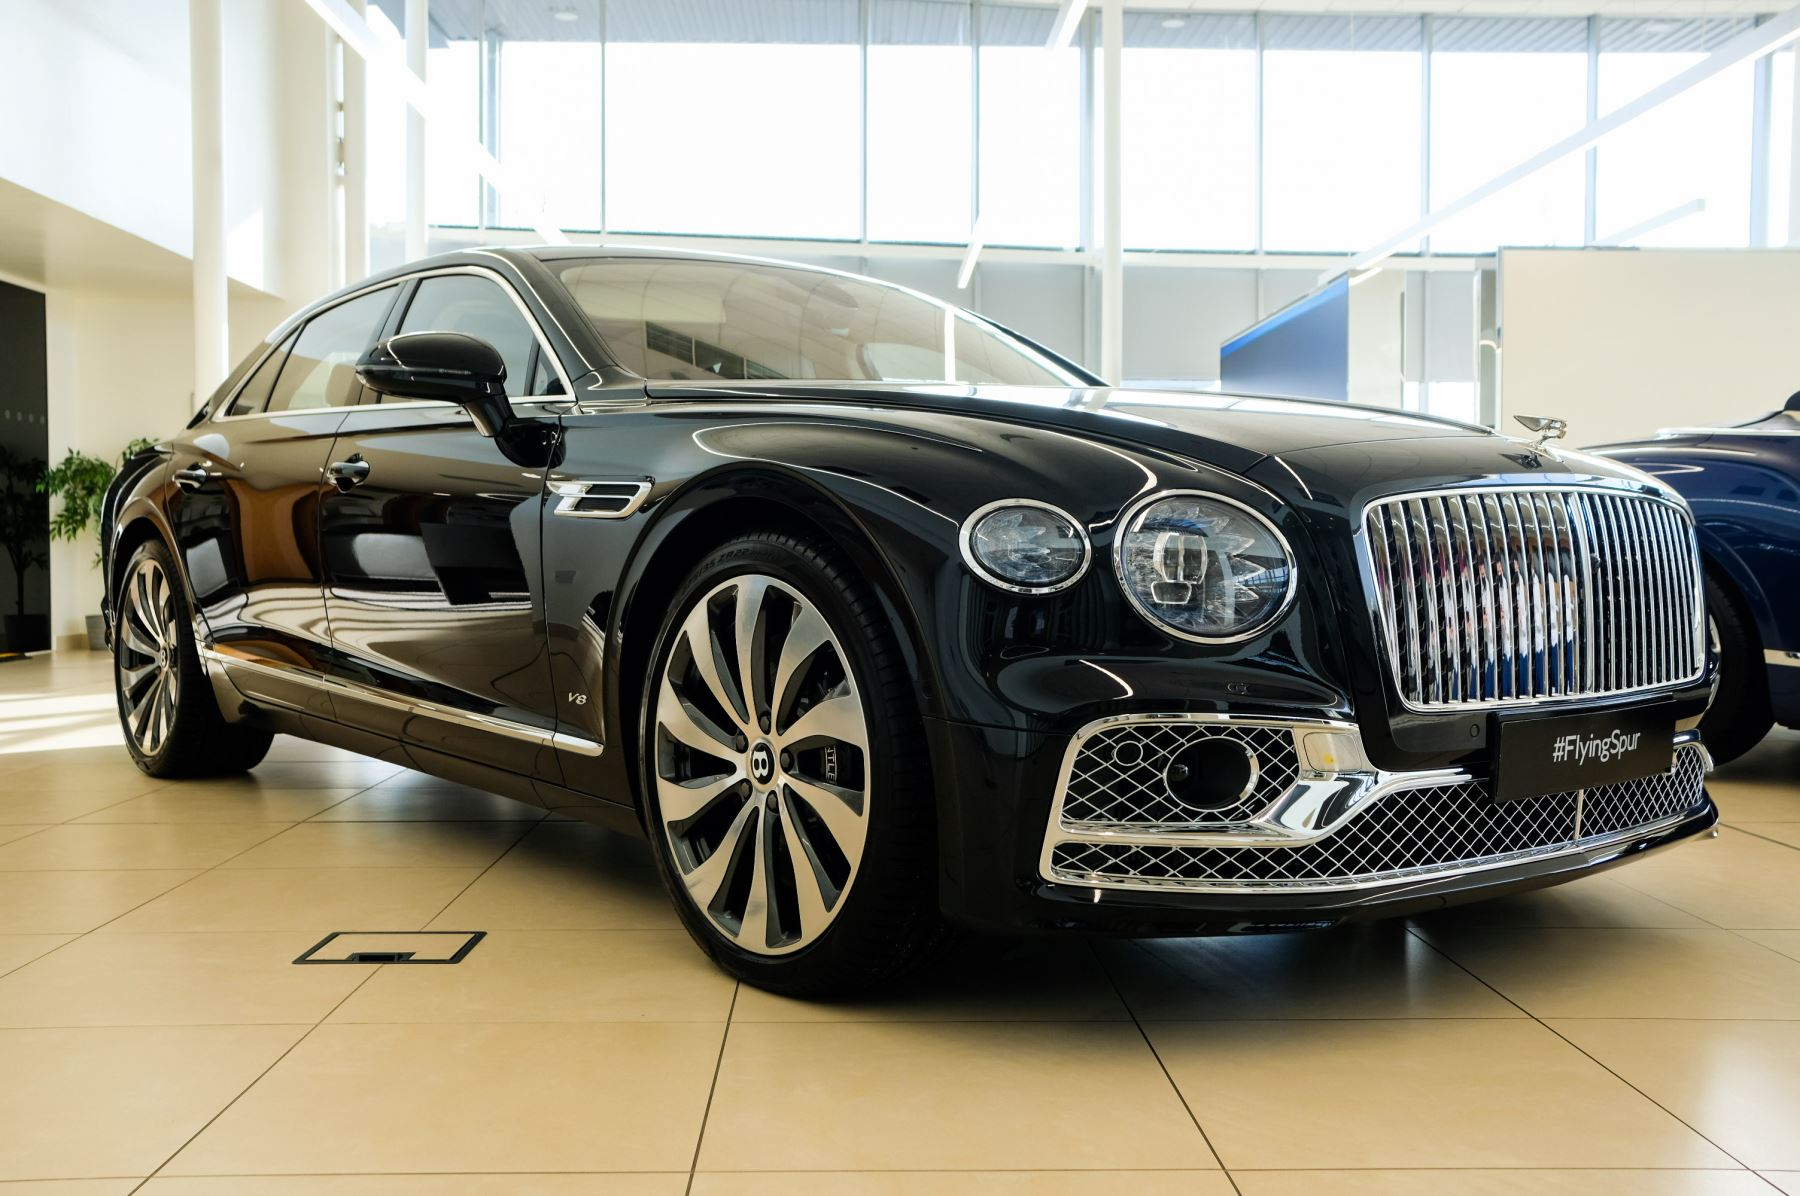 Bentley Flying Spur First Edition Auto 4.0 Automatic 4 door Saloon